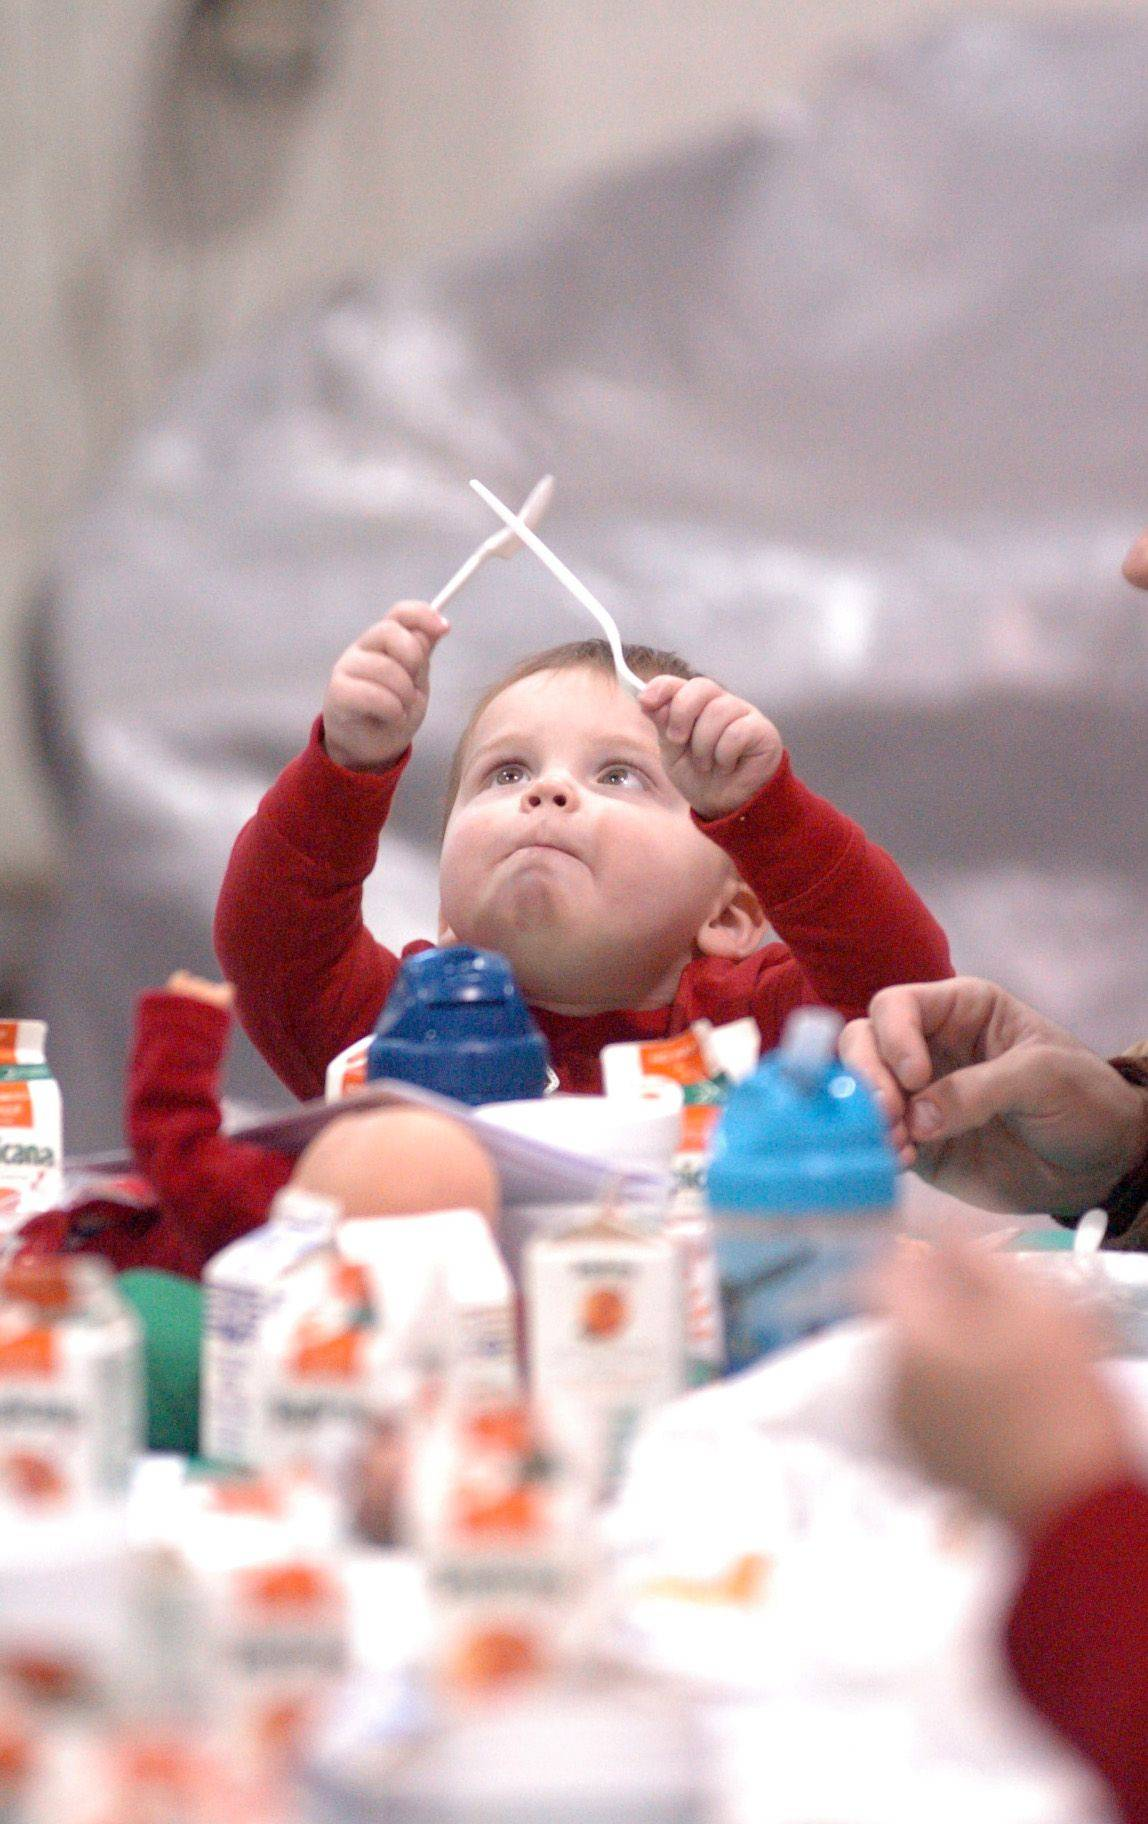 Michael Goolish, 1, from Schaumburg plays with his eating utensils during breakfast while waiting for Santa's arrival at Schaumburg Regional Airport Sunday morning.